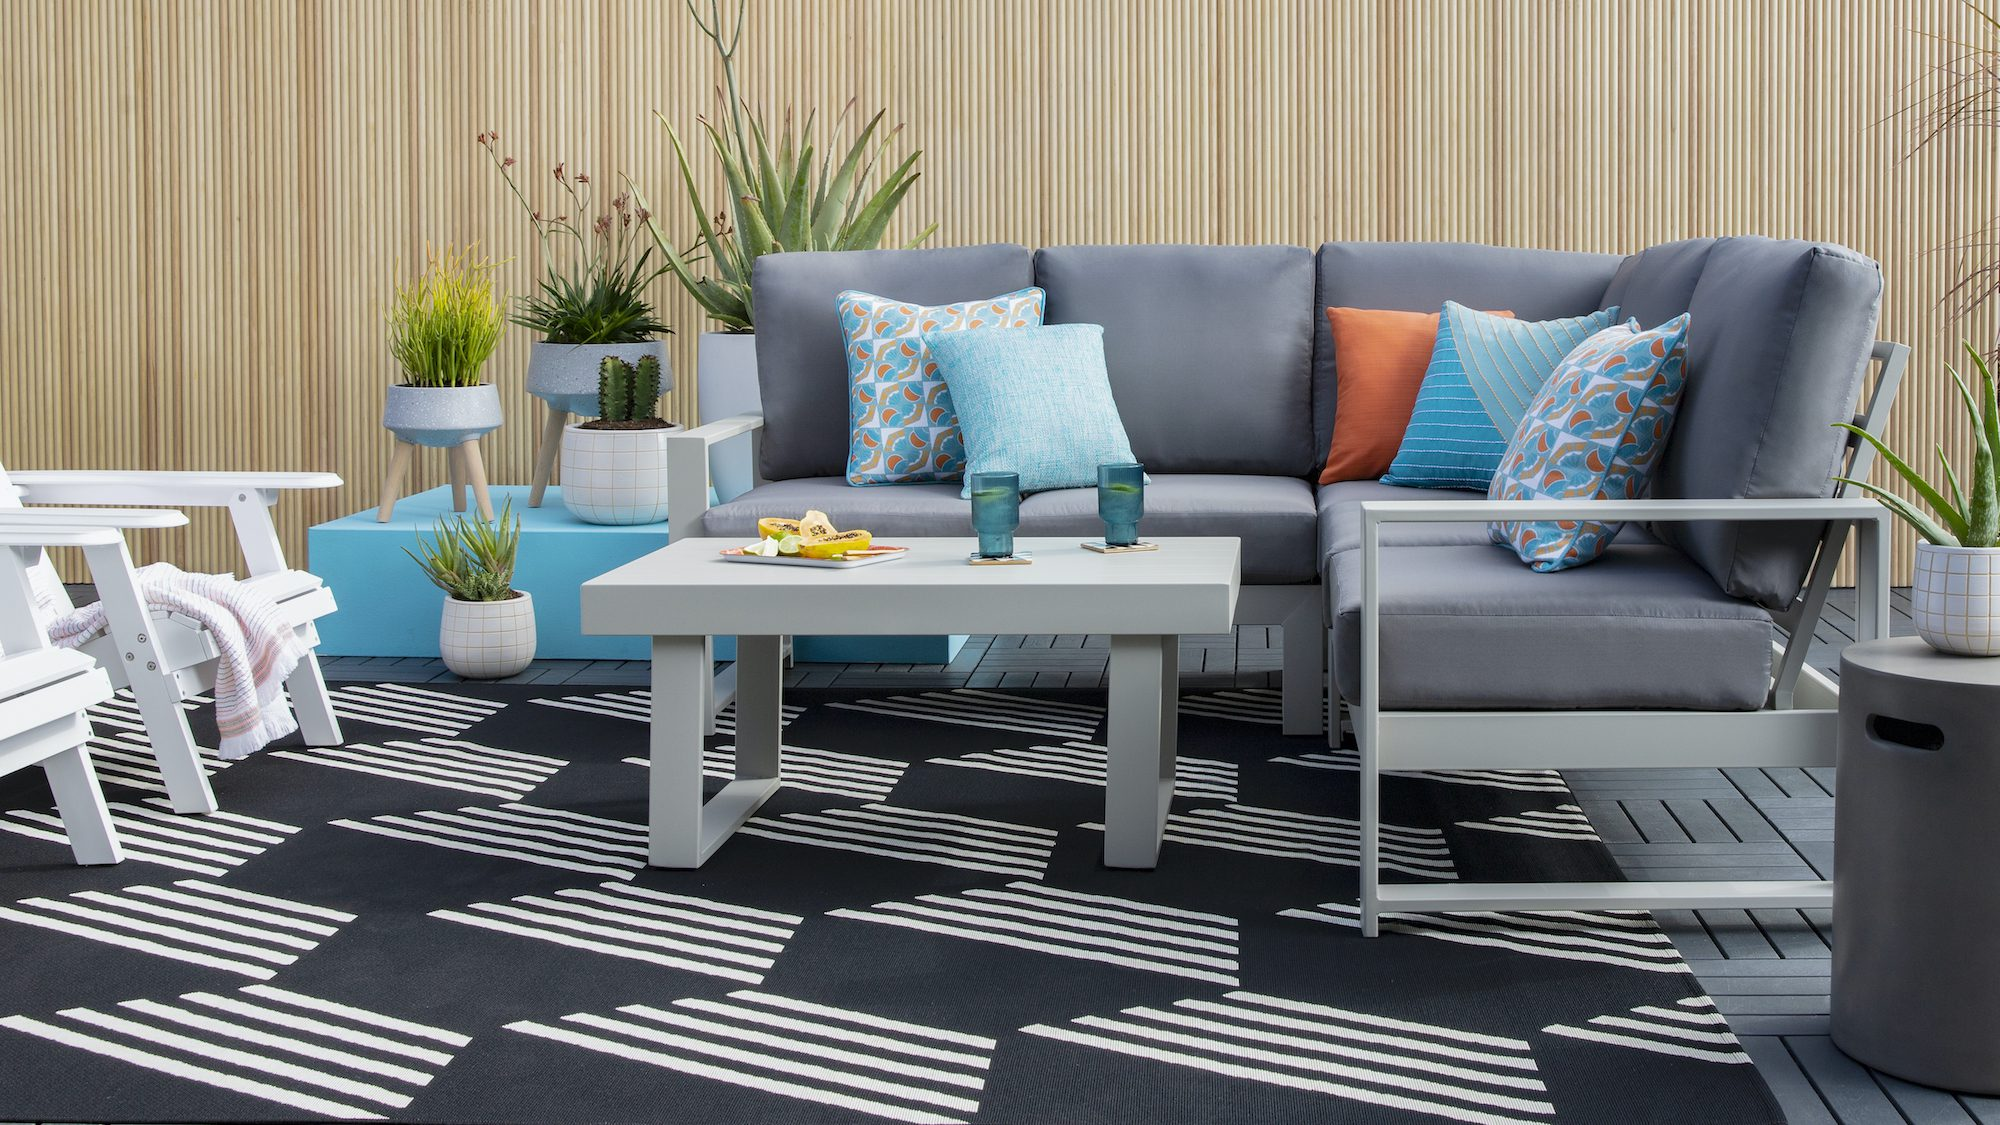 Using blue on accent items or even as accent walls will be seen everywhere. 5 Of The Most Searched Outdoor Decor Trends Of Summer 2021